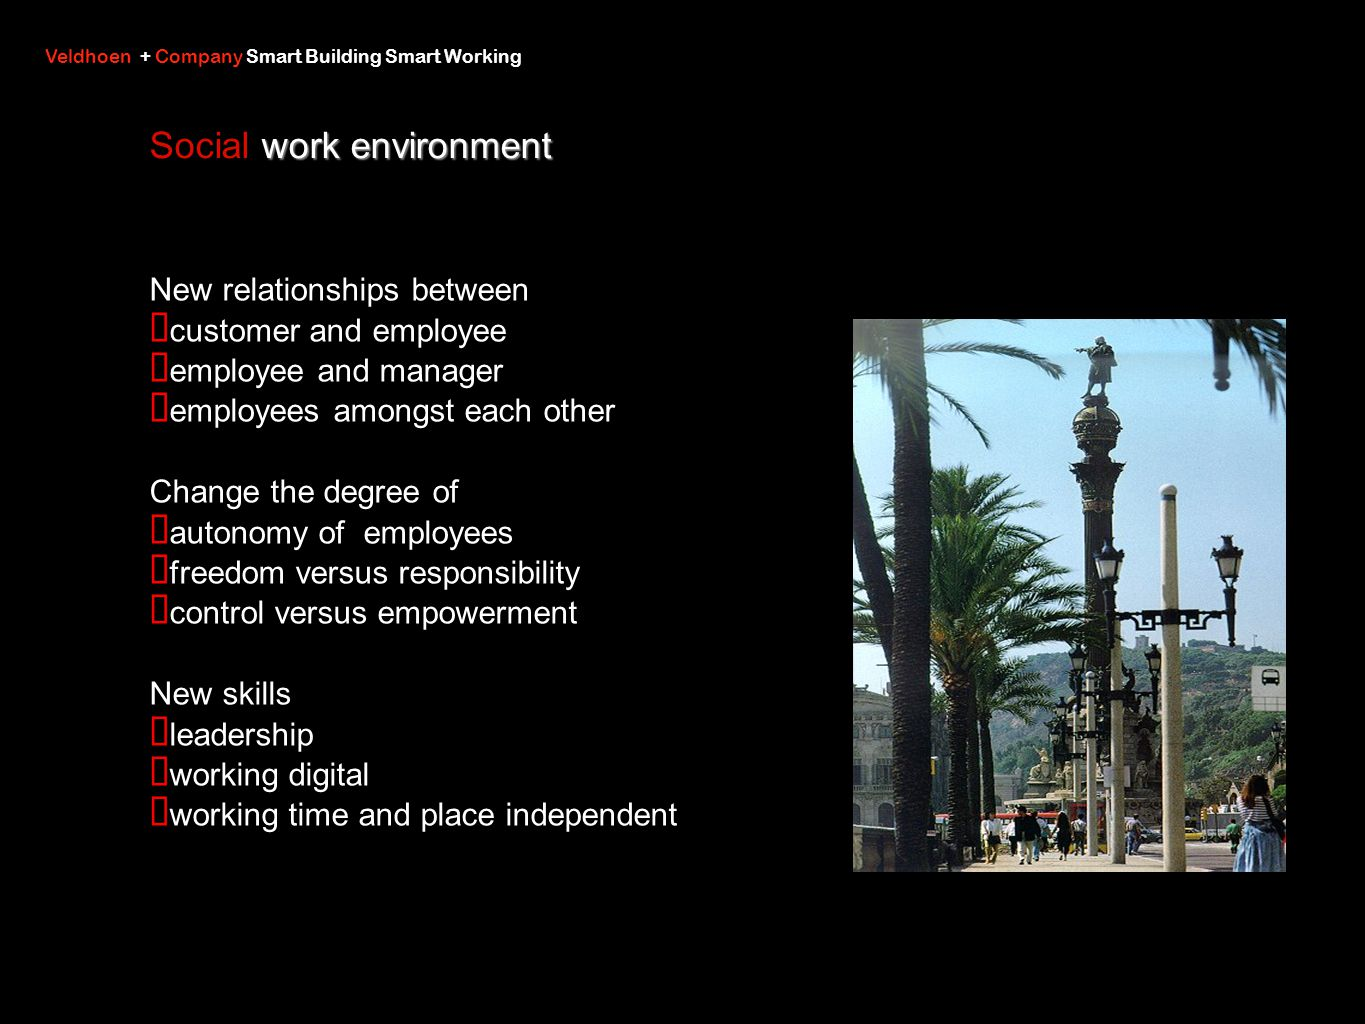 work environment Social work environment New relationships between customer and employee employee and manager employees amongst each other Change the